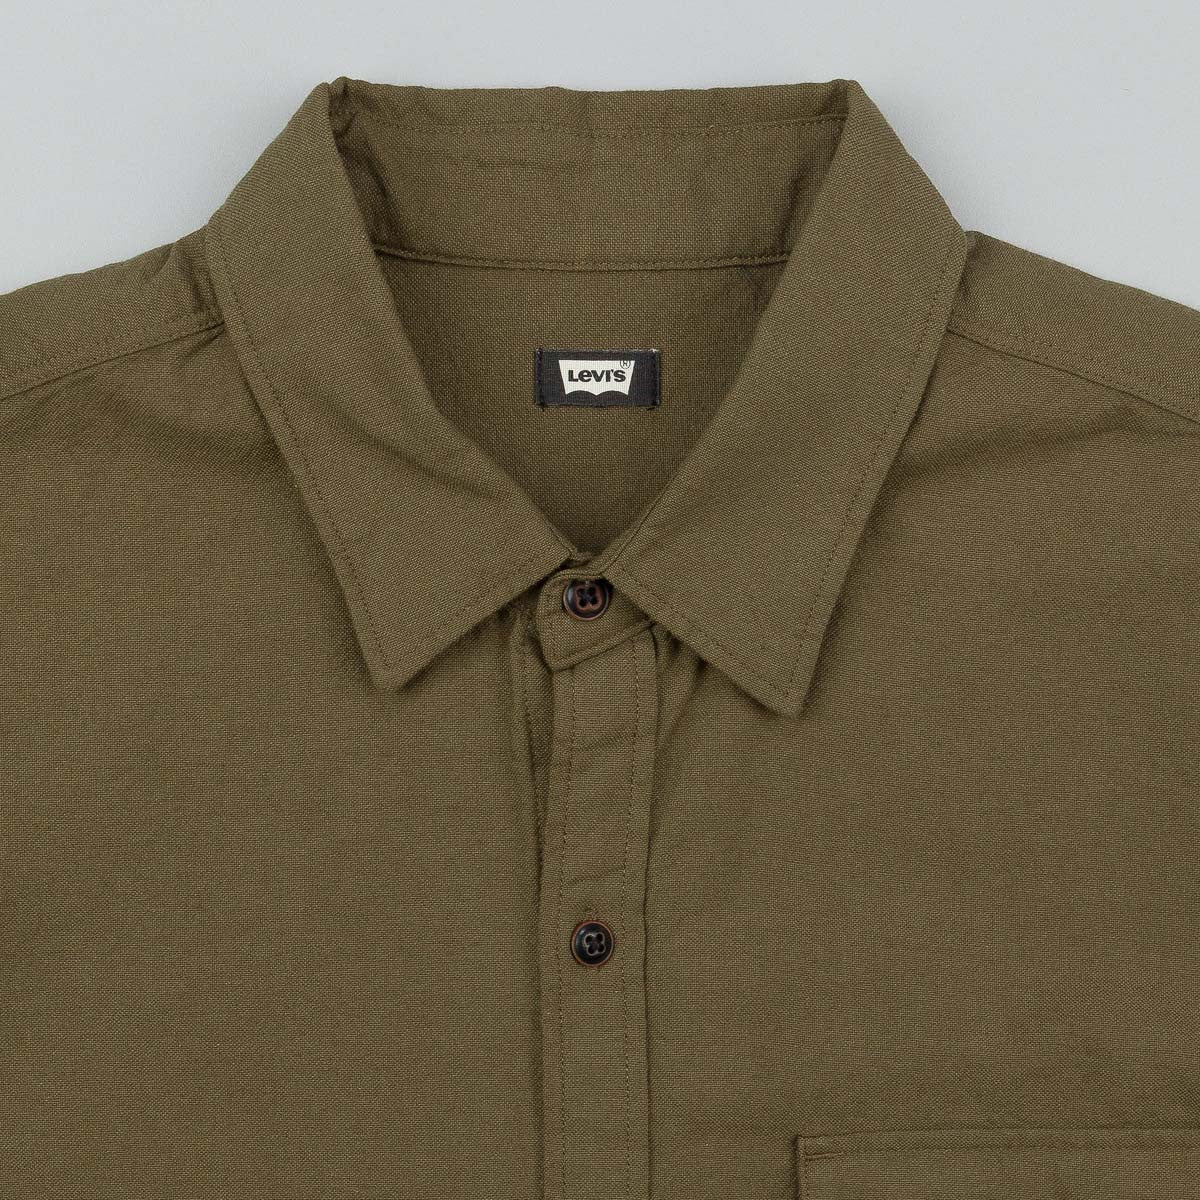 Levi's® Skate Reform Shirt - Ivy green